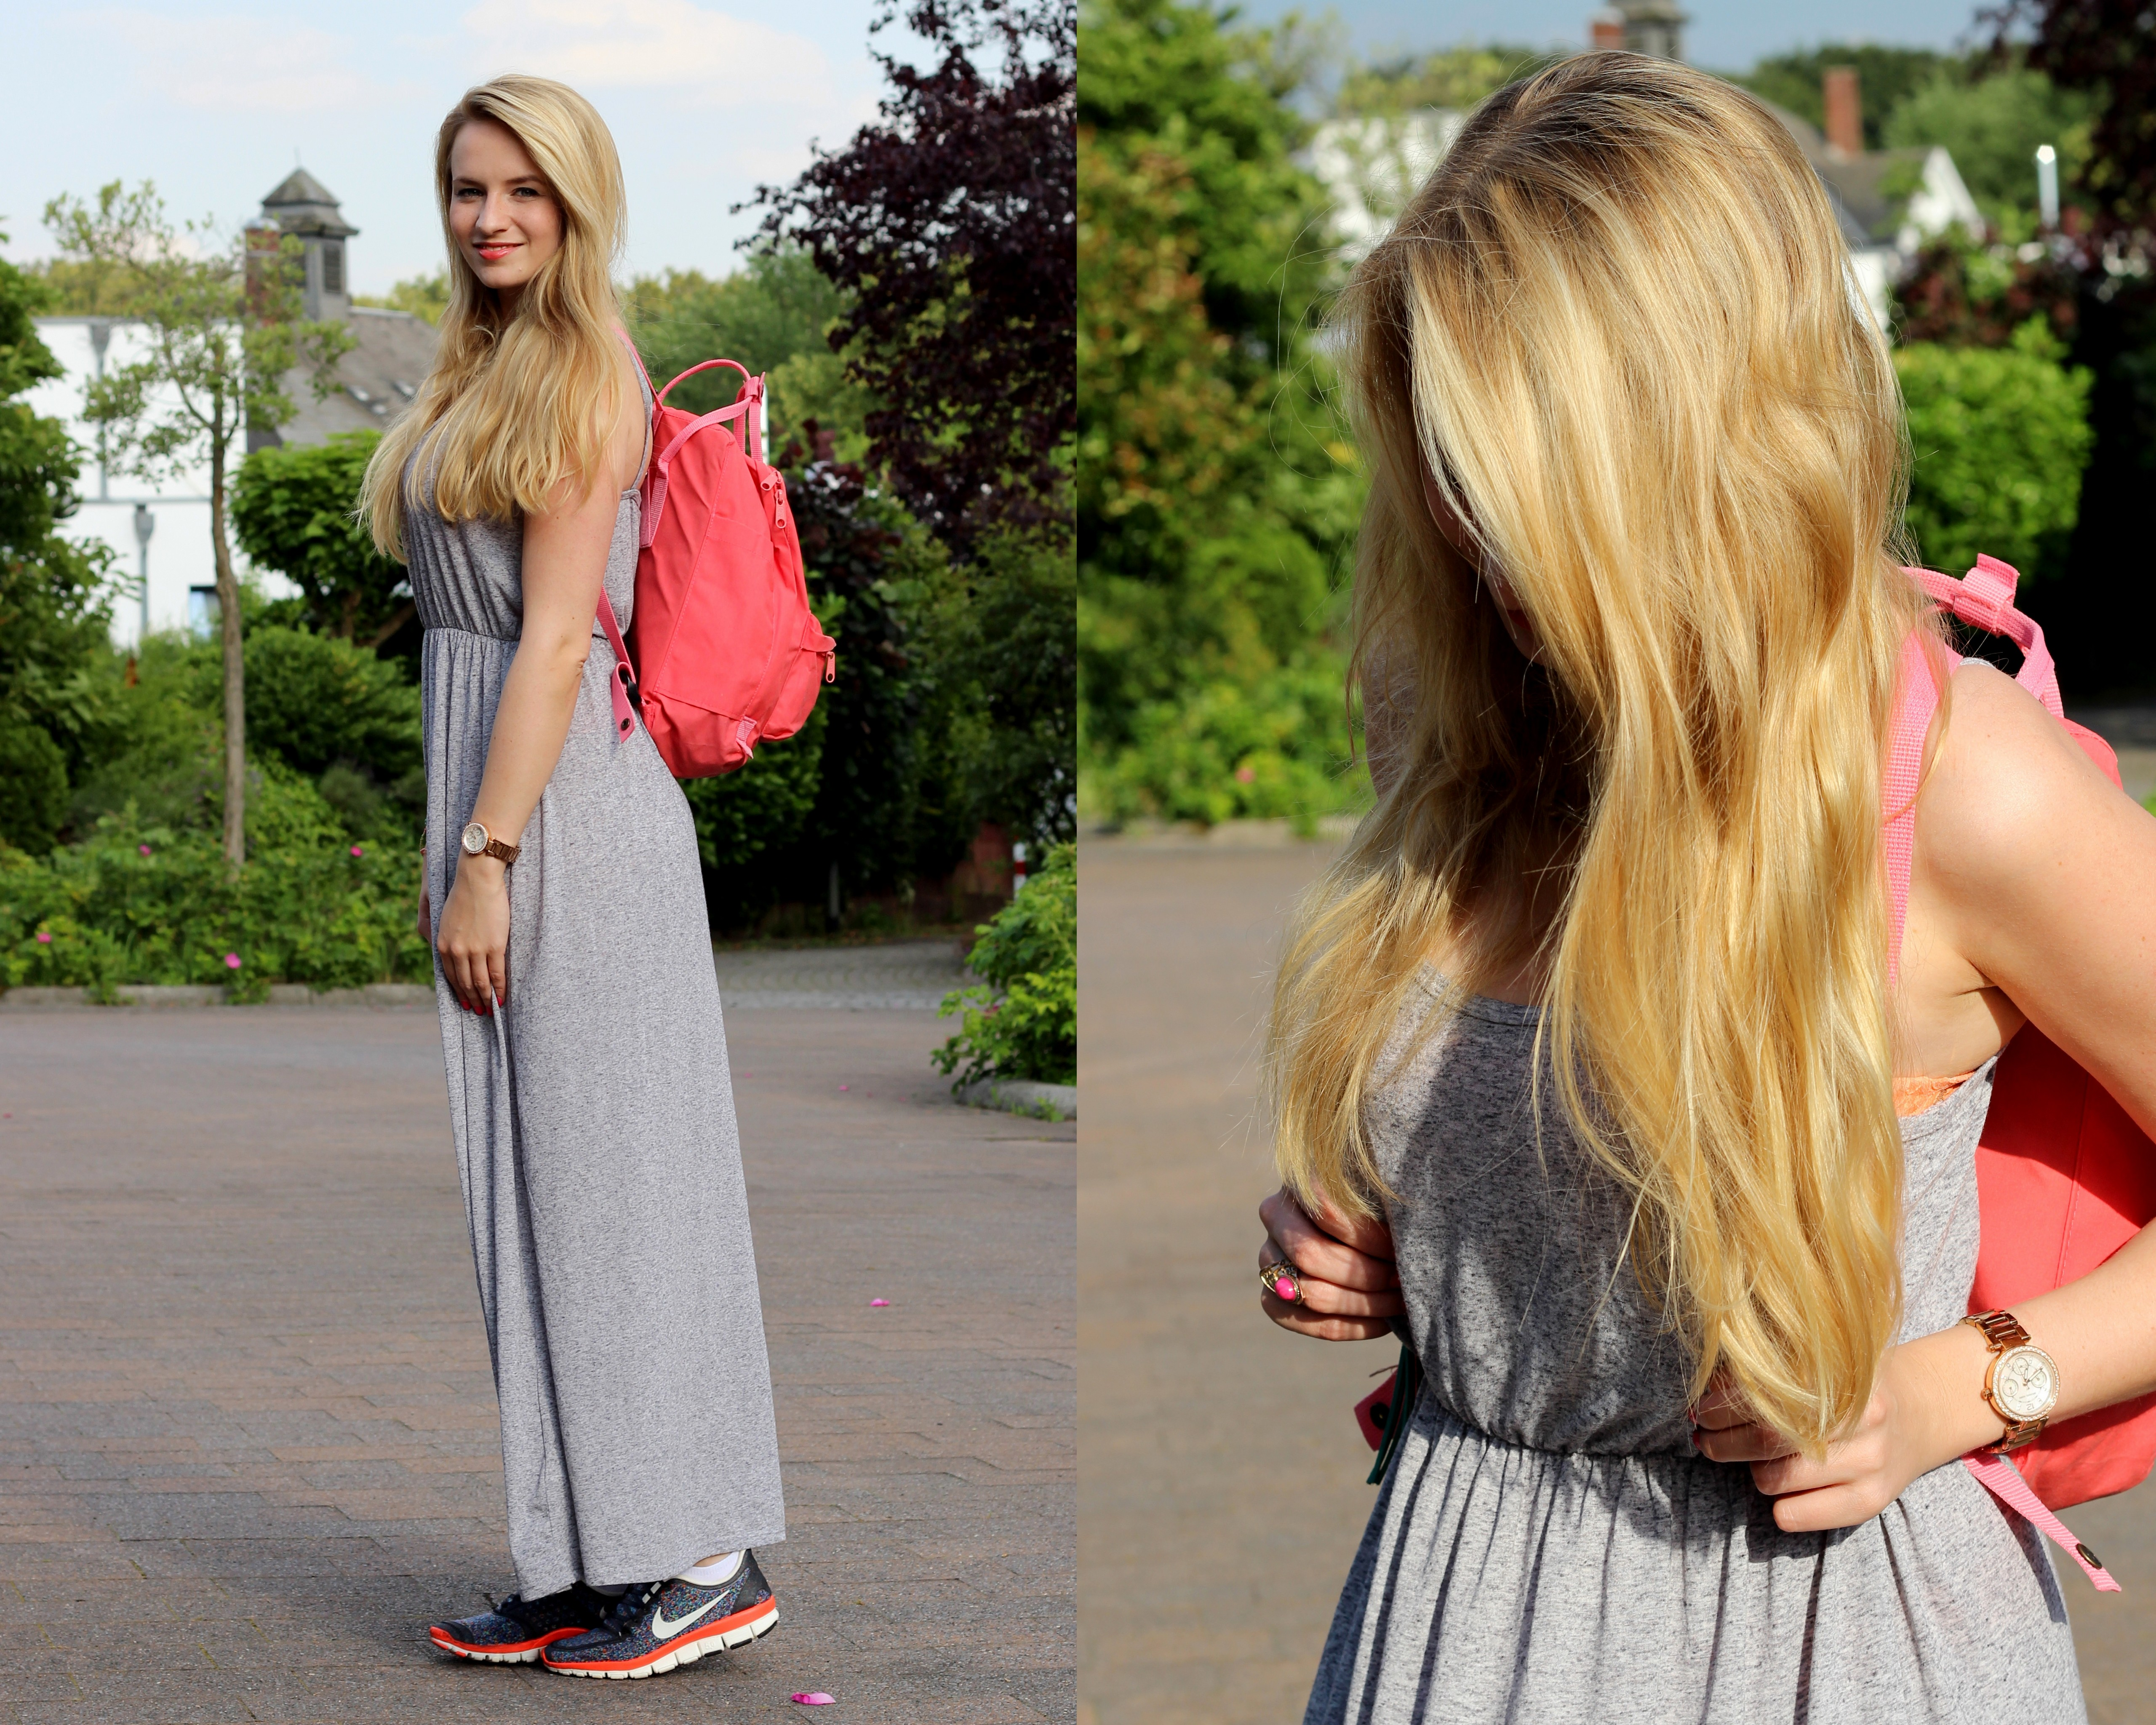 b18f04a9e713f0 Outfit: Maxidresses for the win! - MRS. BRIGHTSIDE - Fashion, Travel ...